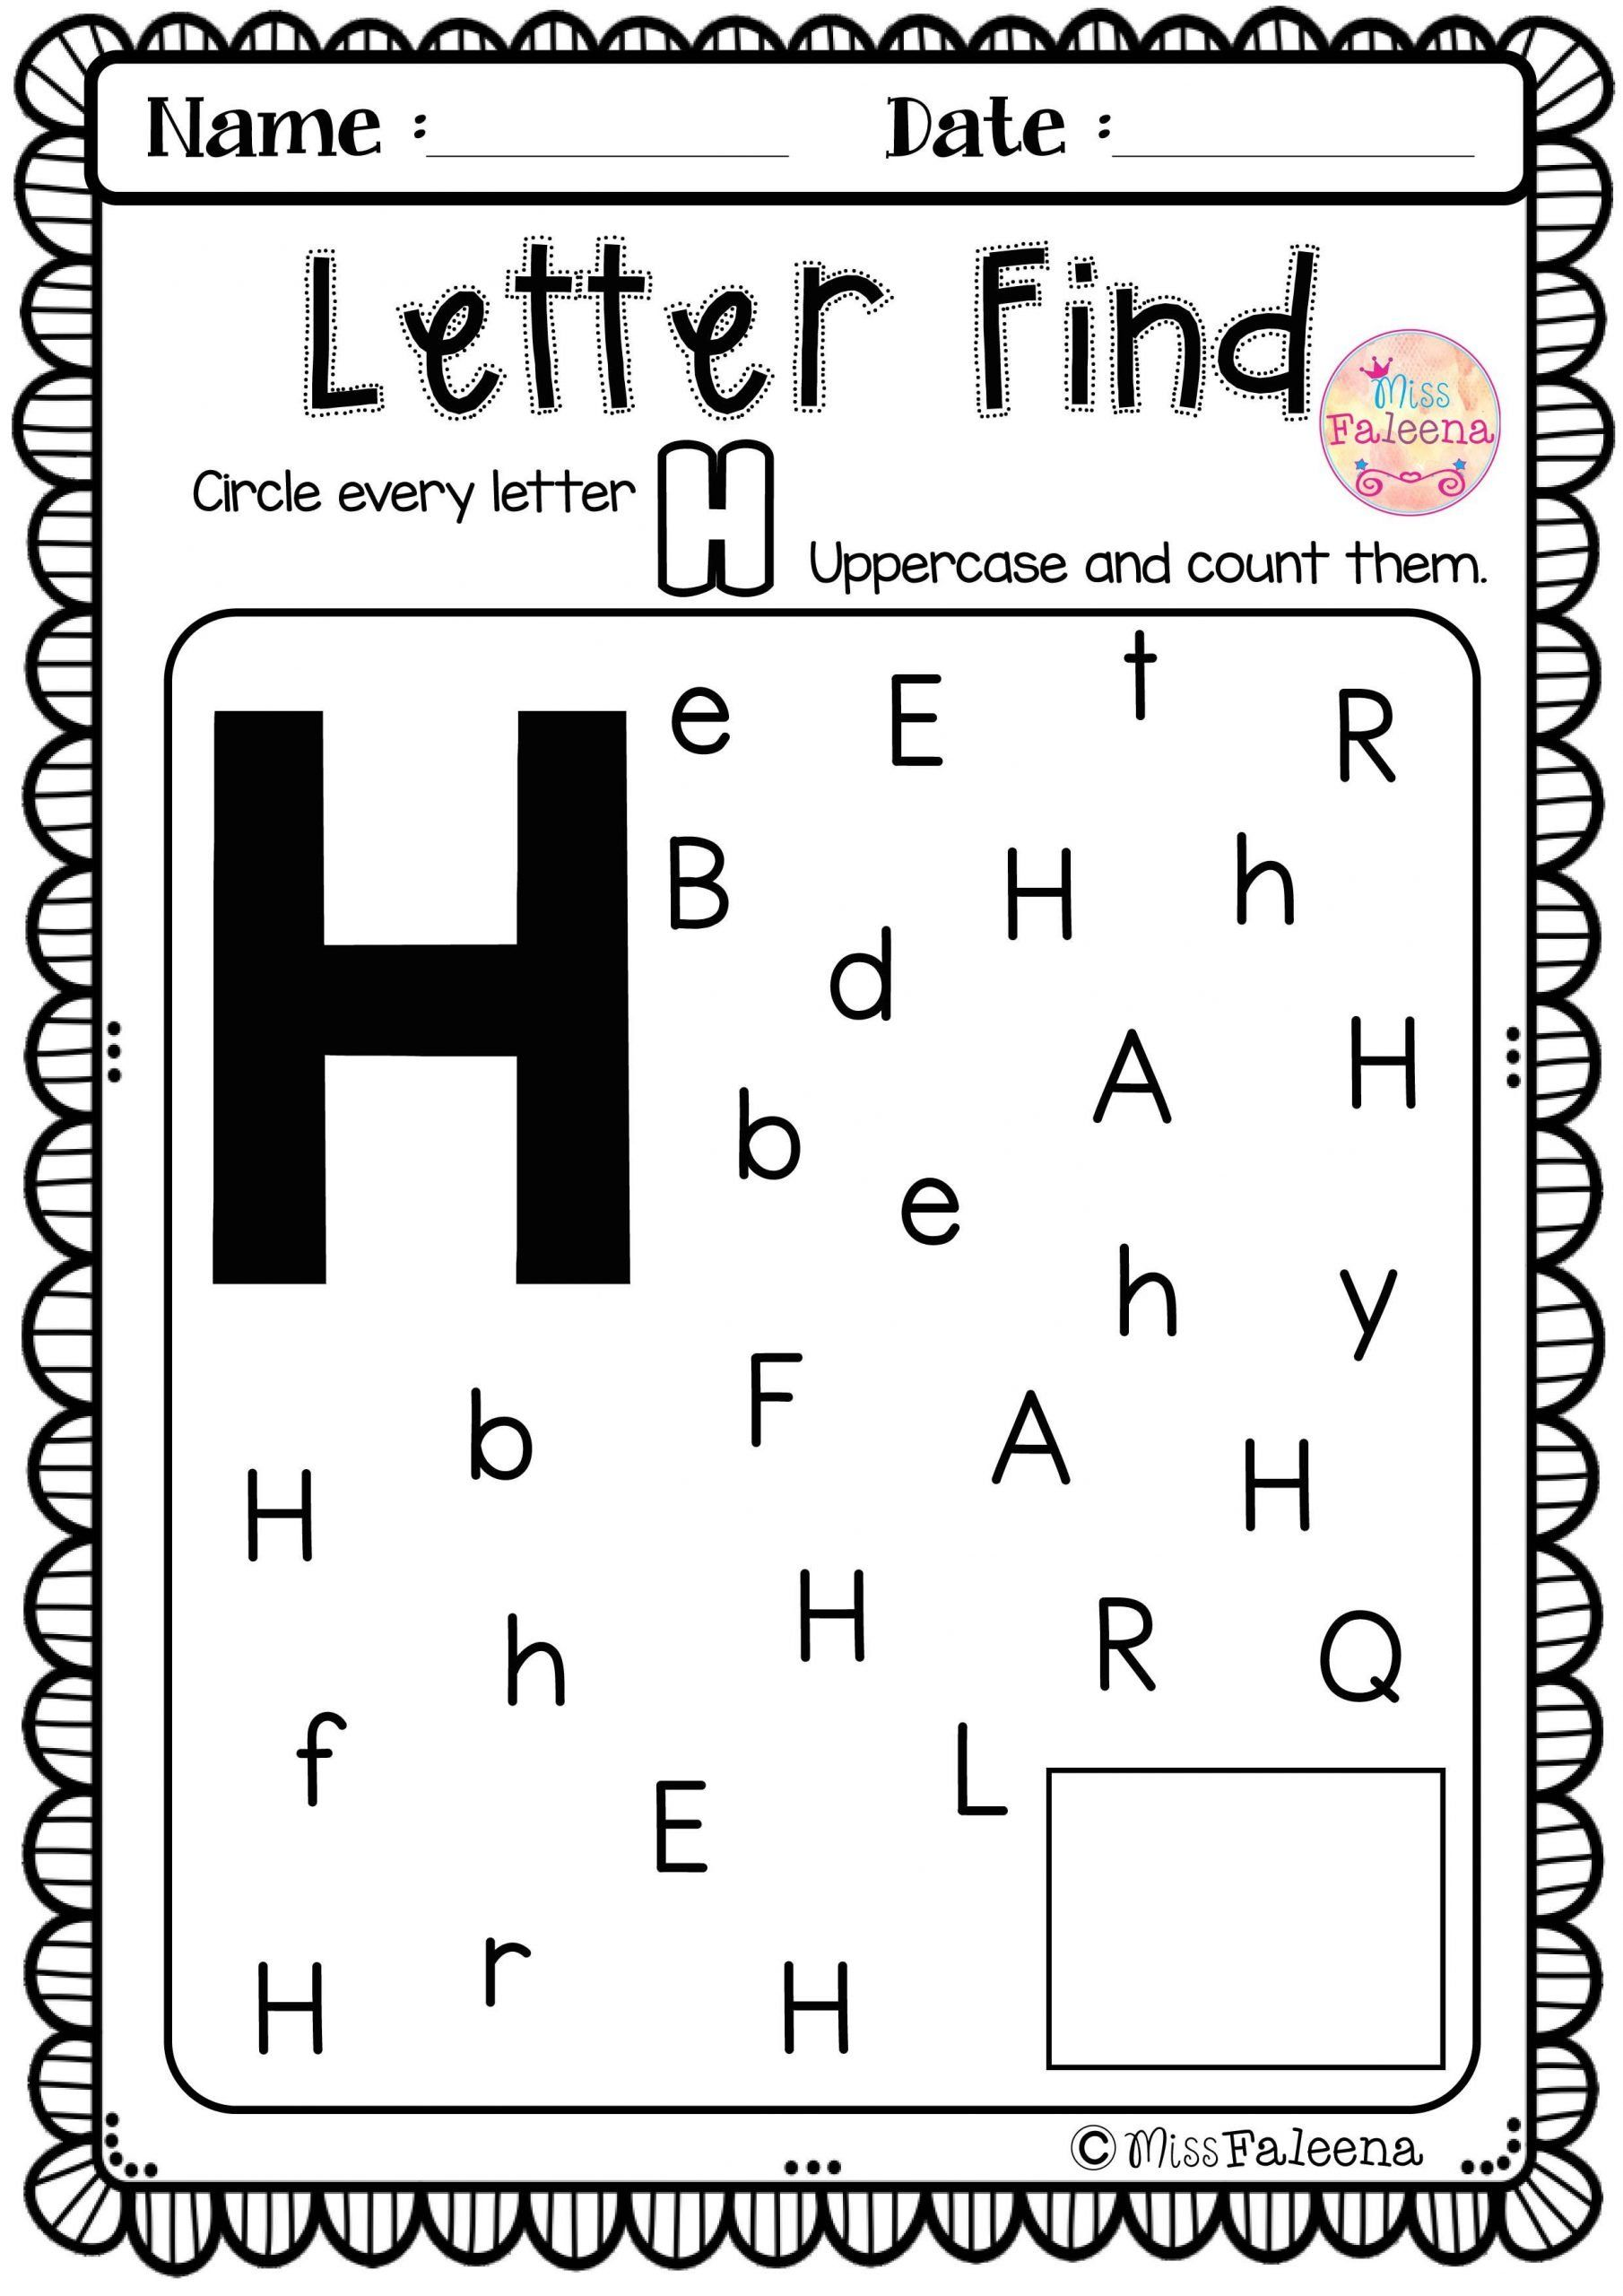 Letter Recognition Worksheets For Kindergarten Alphabet